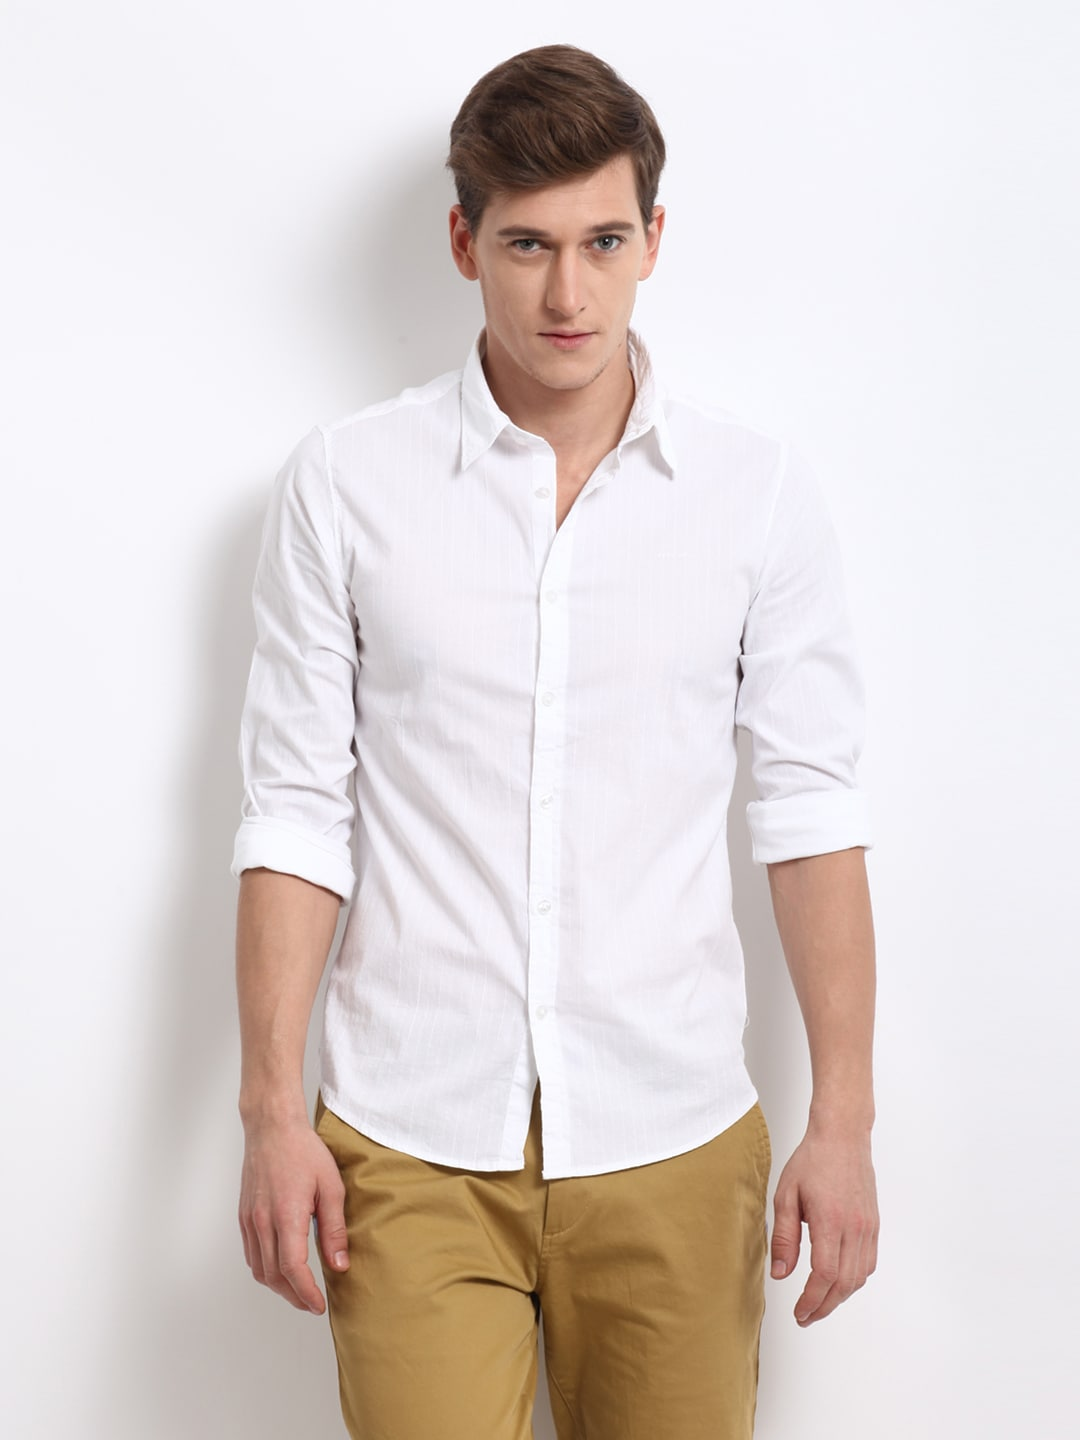 The basic white tee is a wardrobe workhorse. Here, find the right t-shirt for your style and budget. Not all white tees are made the same. The basic white tee is a wardrobe workhorse. Here, find the right t-shirt for your style and budget. The Best (Not Too Sheer) White T-Shirt Options.